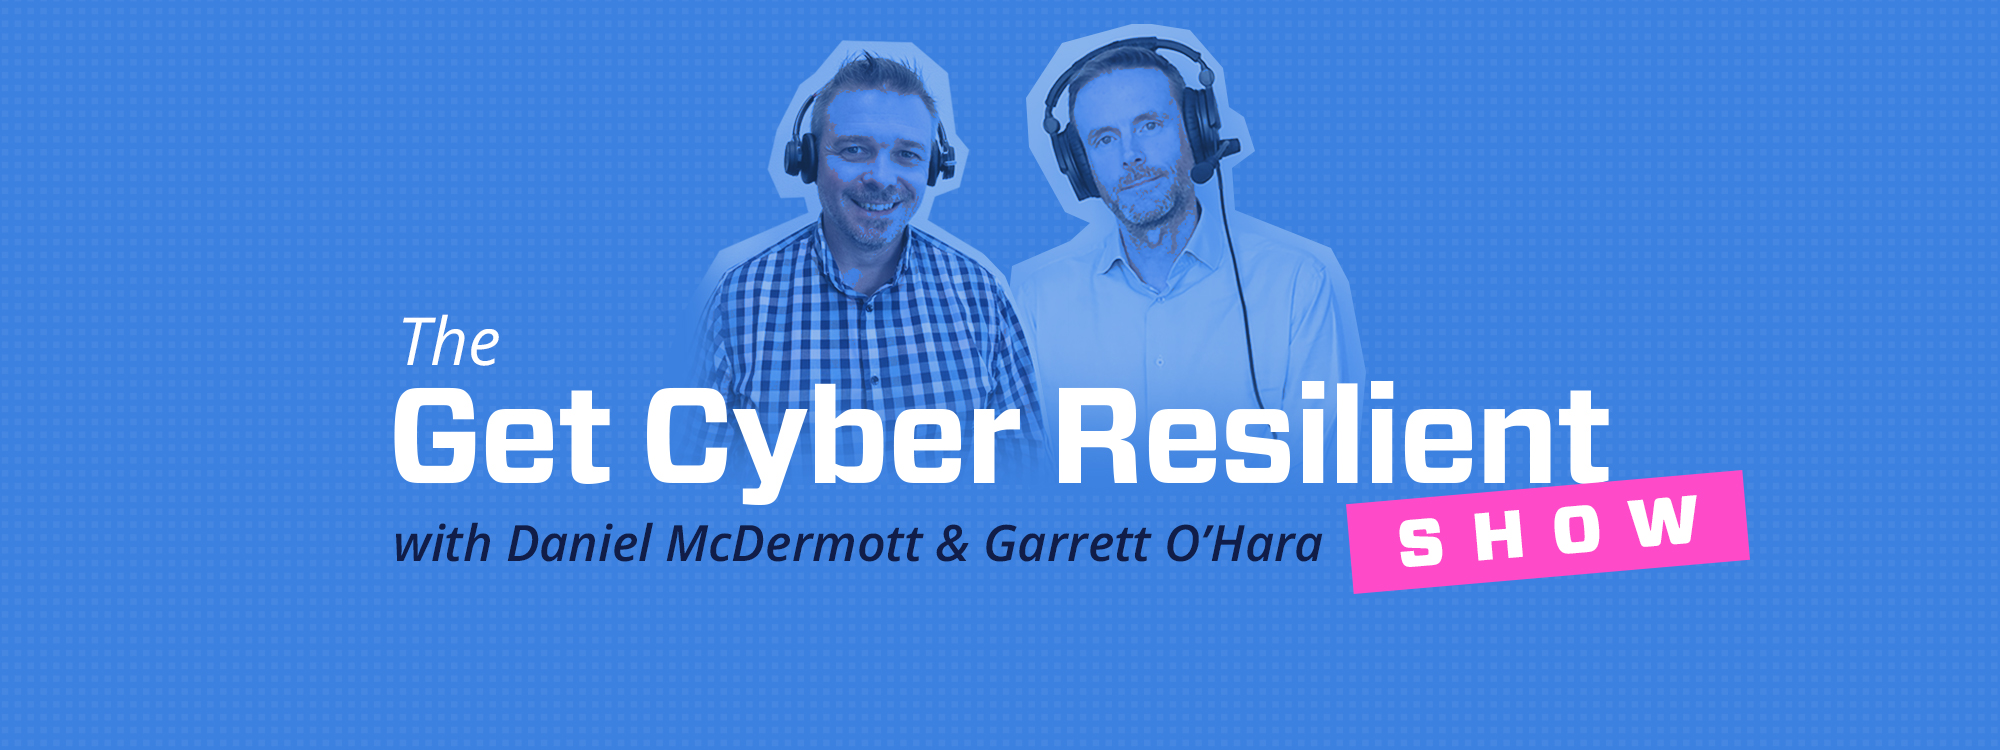 Get Cyber Resilient Show Episode #29